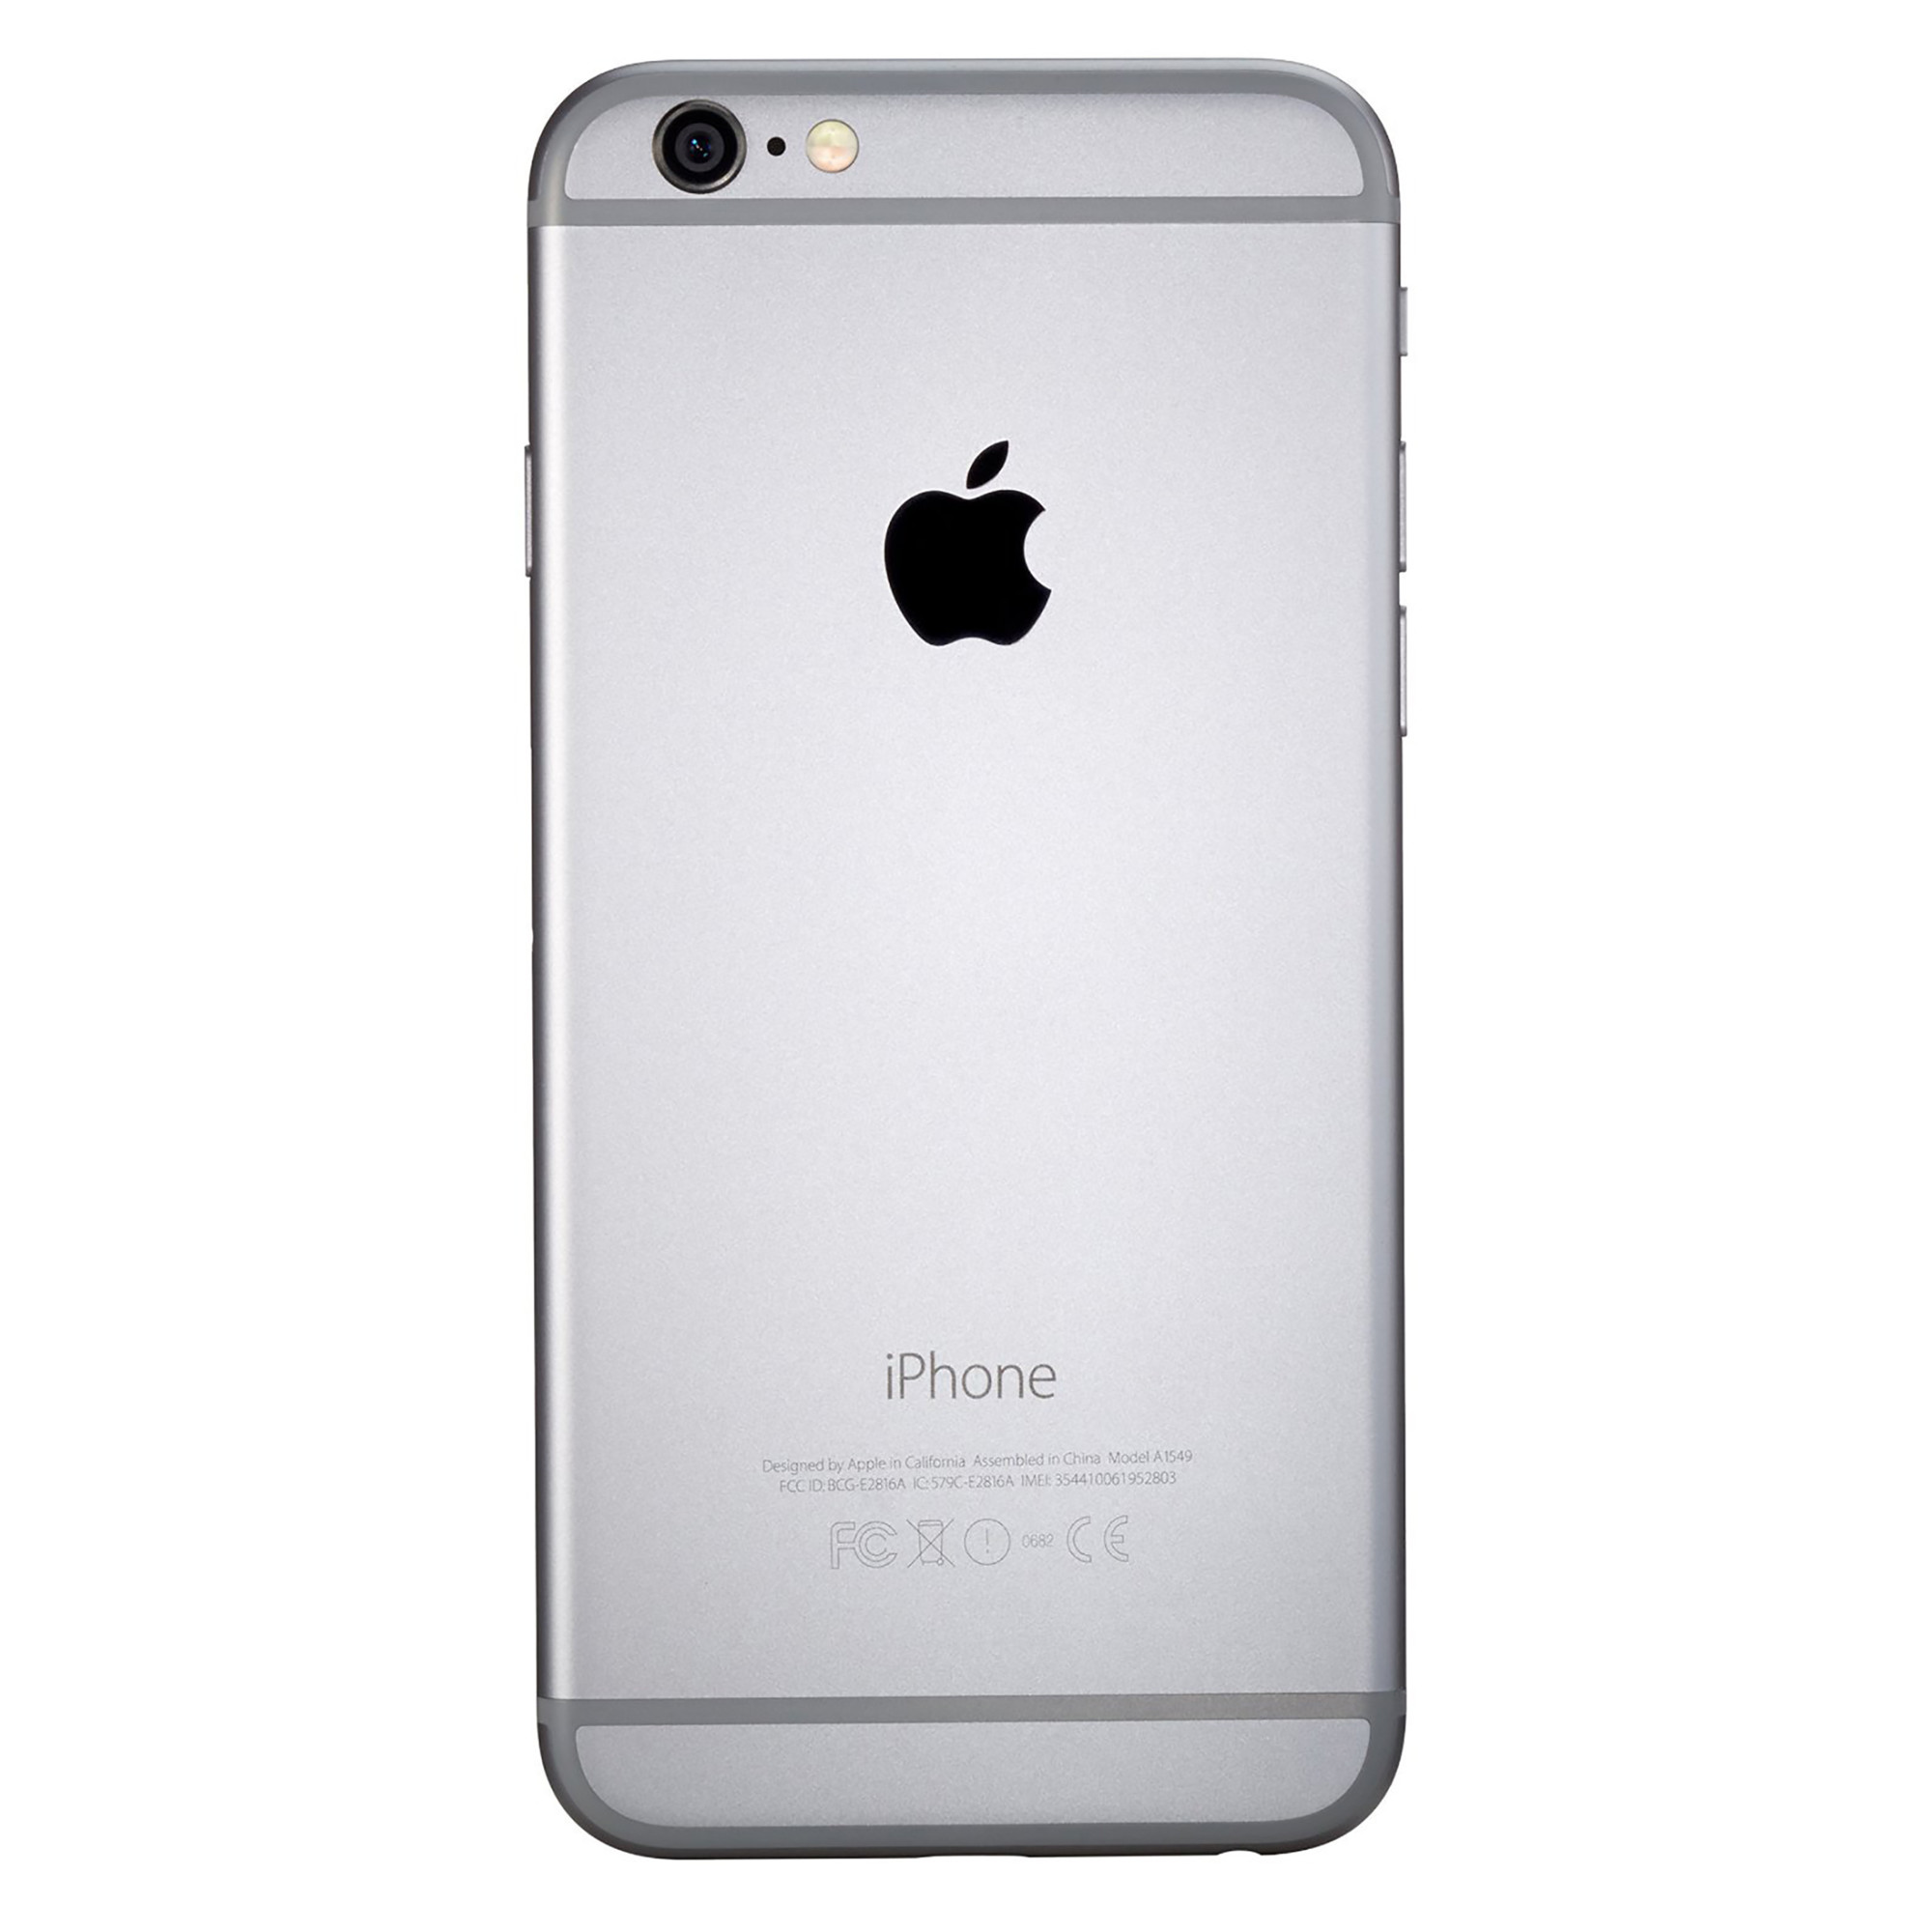 iphone 6 megapixel apple iphone 6 64gb at amp t locked 4g lte phone w 8 11360